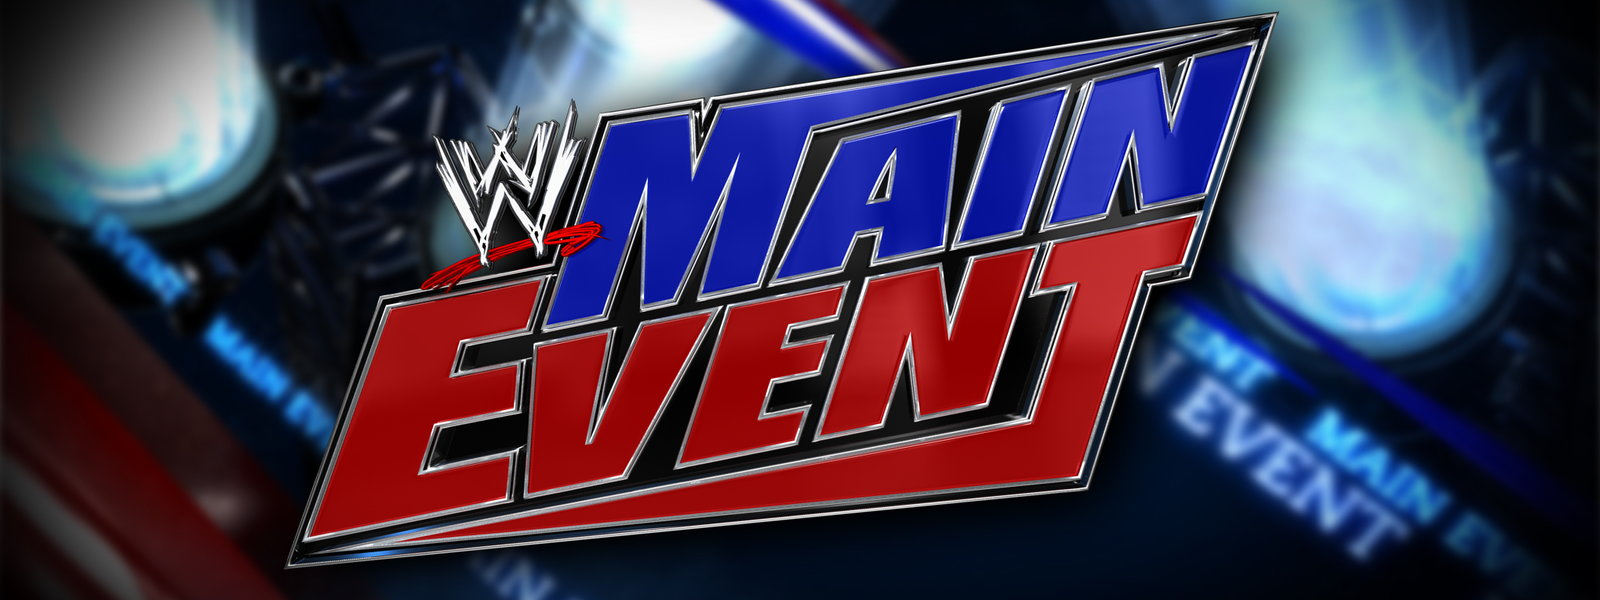 wwe main event results5132015